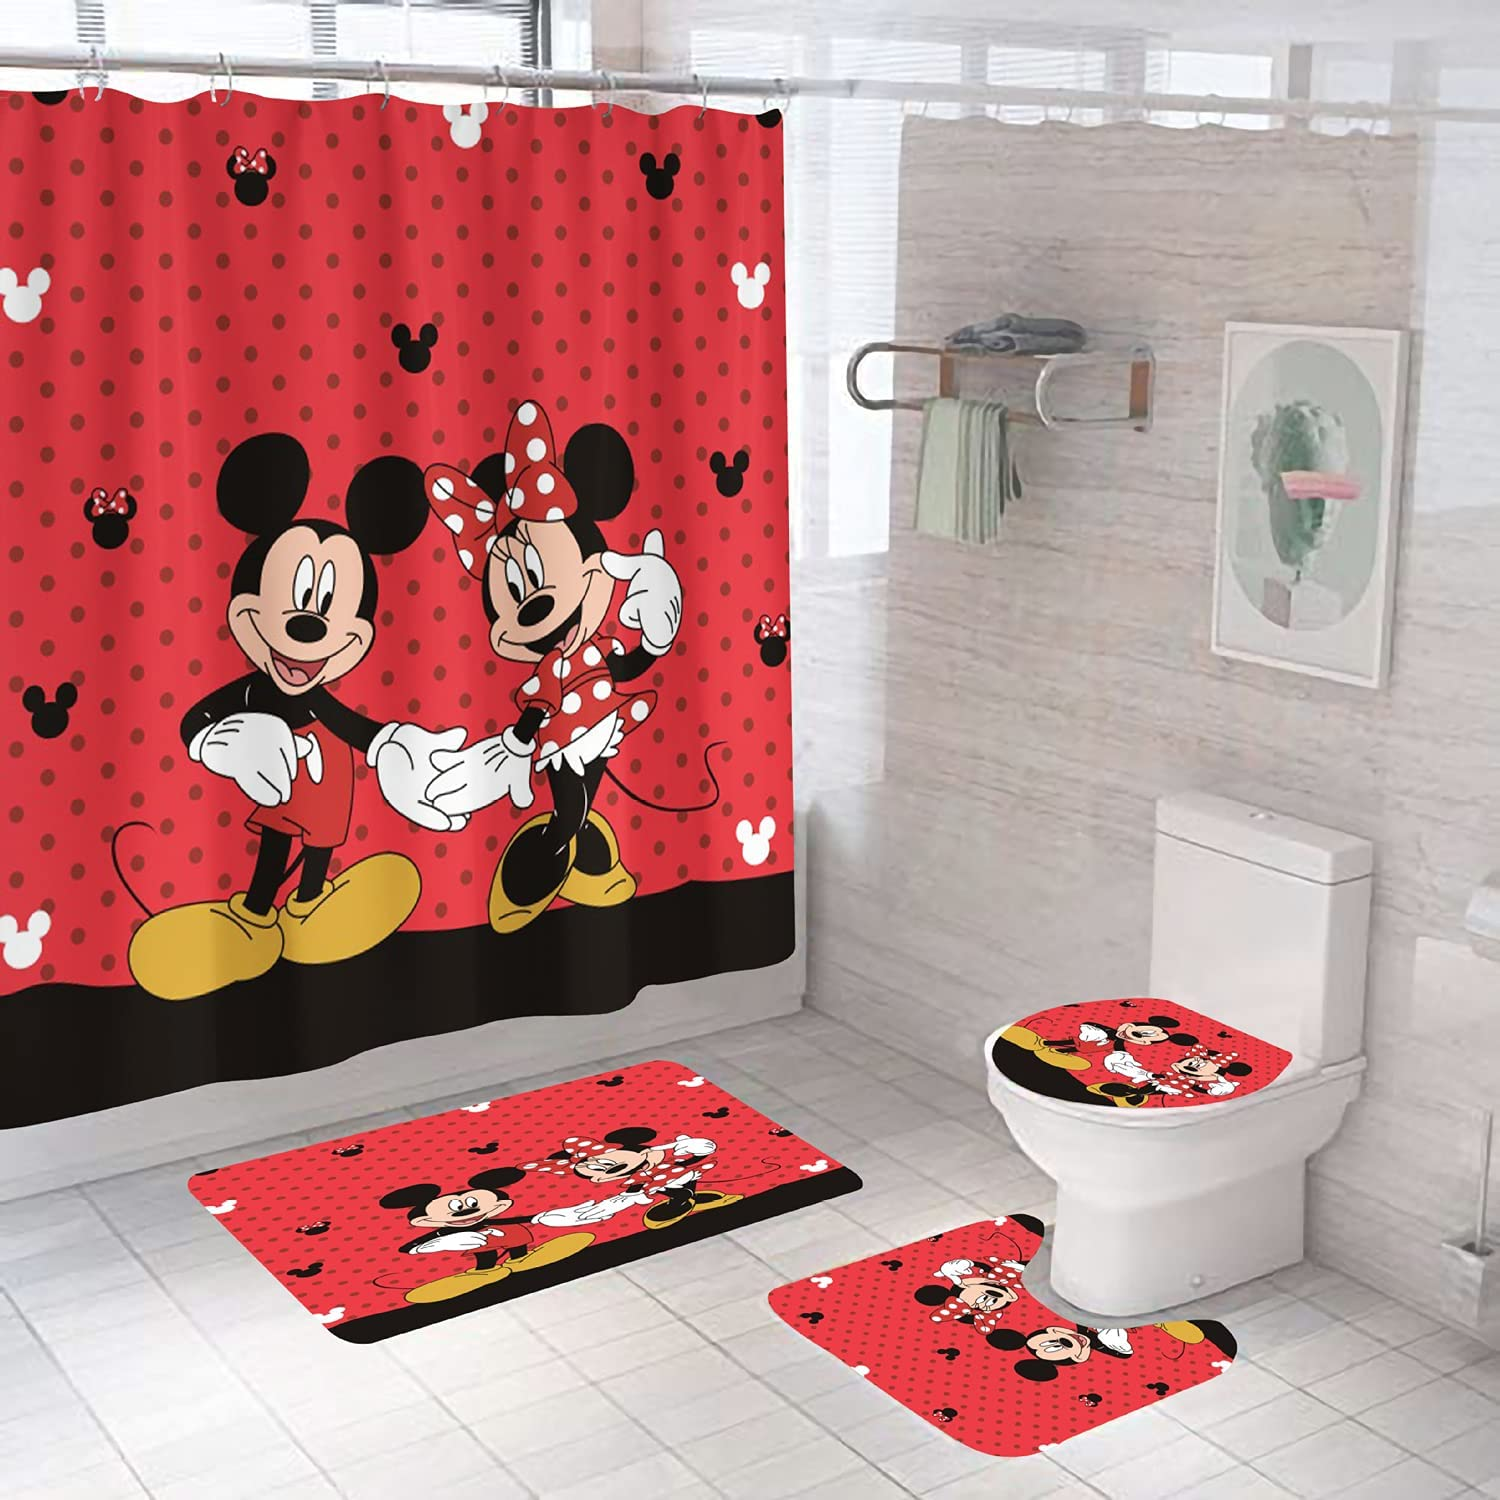 4pcs Mickey& Minnie Mouse Shower Curtain Set With Non-slip Rugs,toilet Lid Cover And Bath Mat,extra Long Waterproof Fabric Shower Curtain Bathroom Curtain With 12 Hooks For Home Bathroom Decor,72